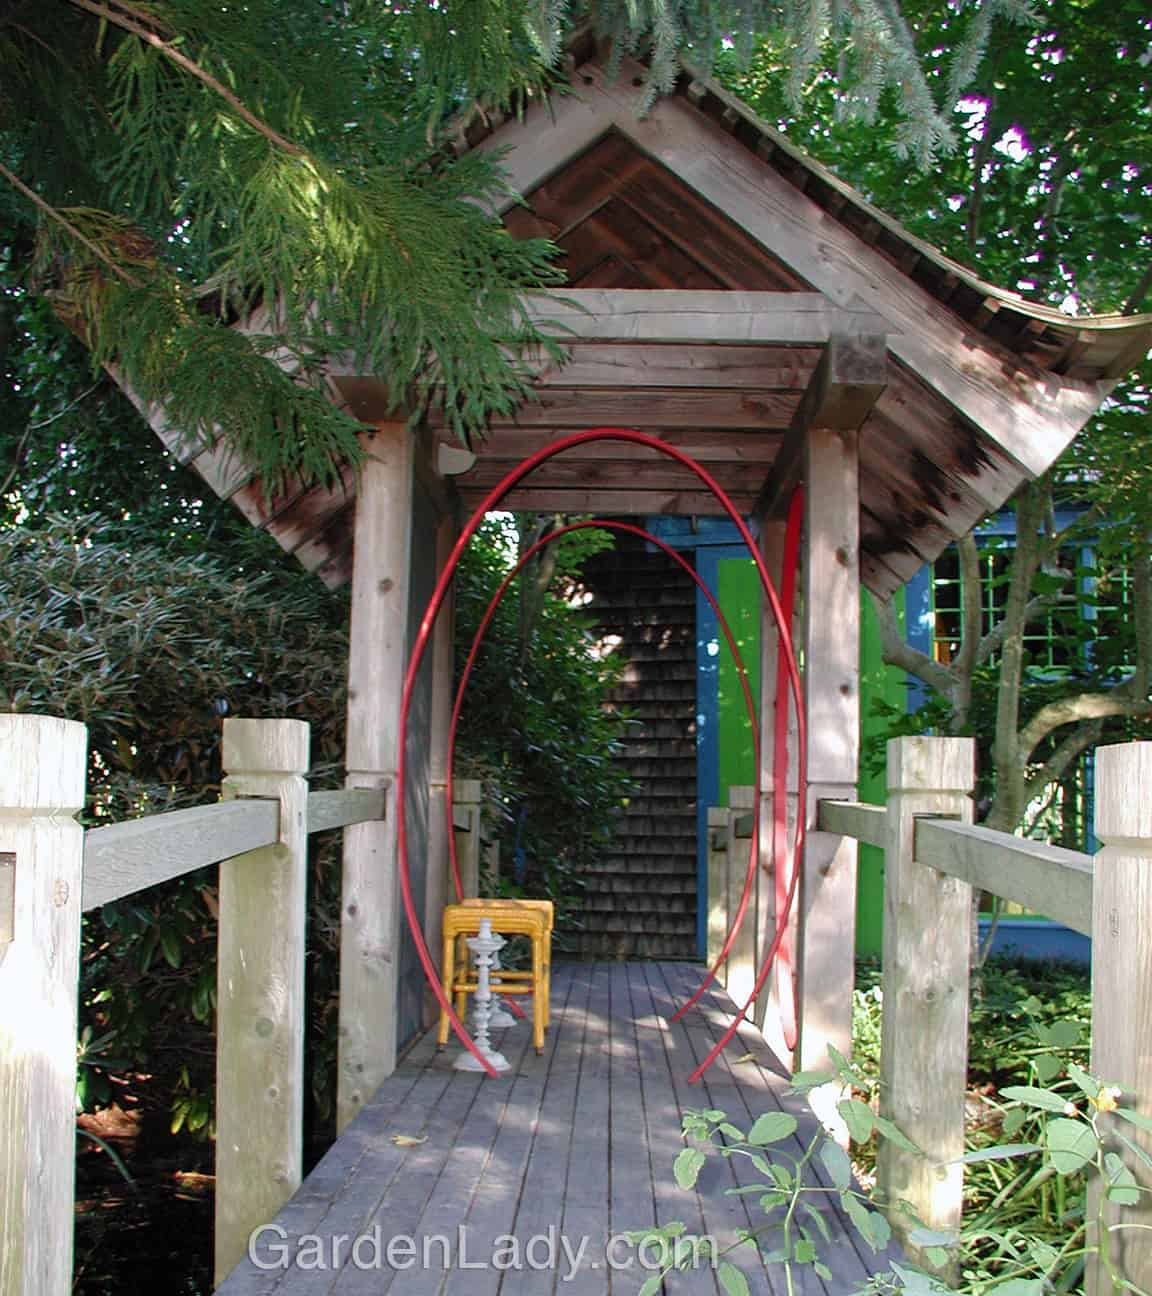 This entry to a garden room, seen on the GWA garden tours in Long Island, reminded me how powerful some simple touches of color can be on garden structures.